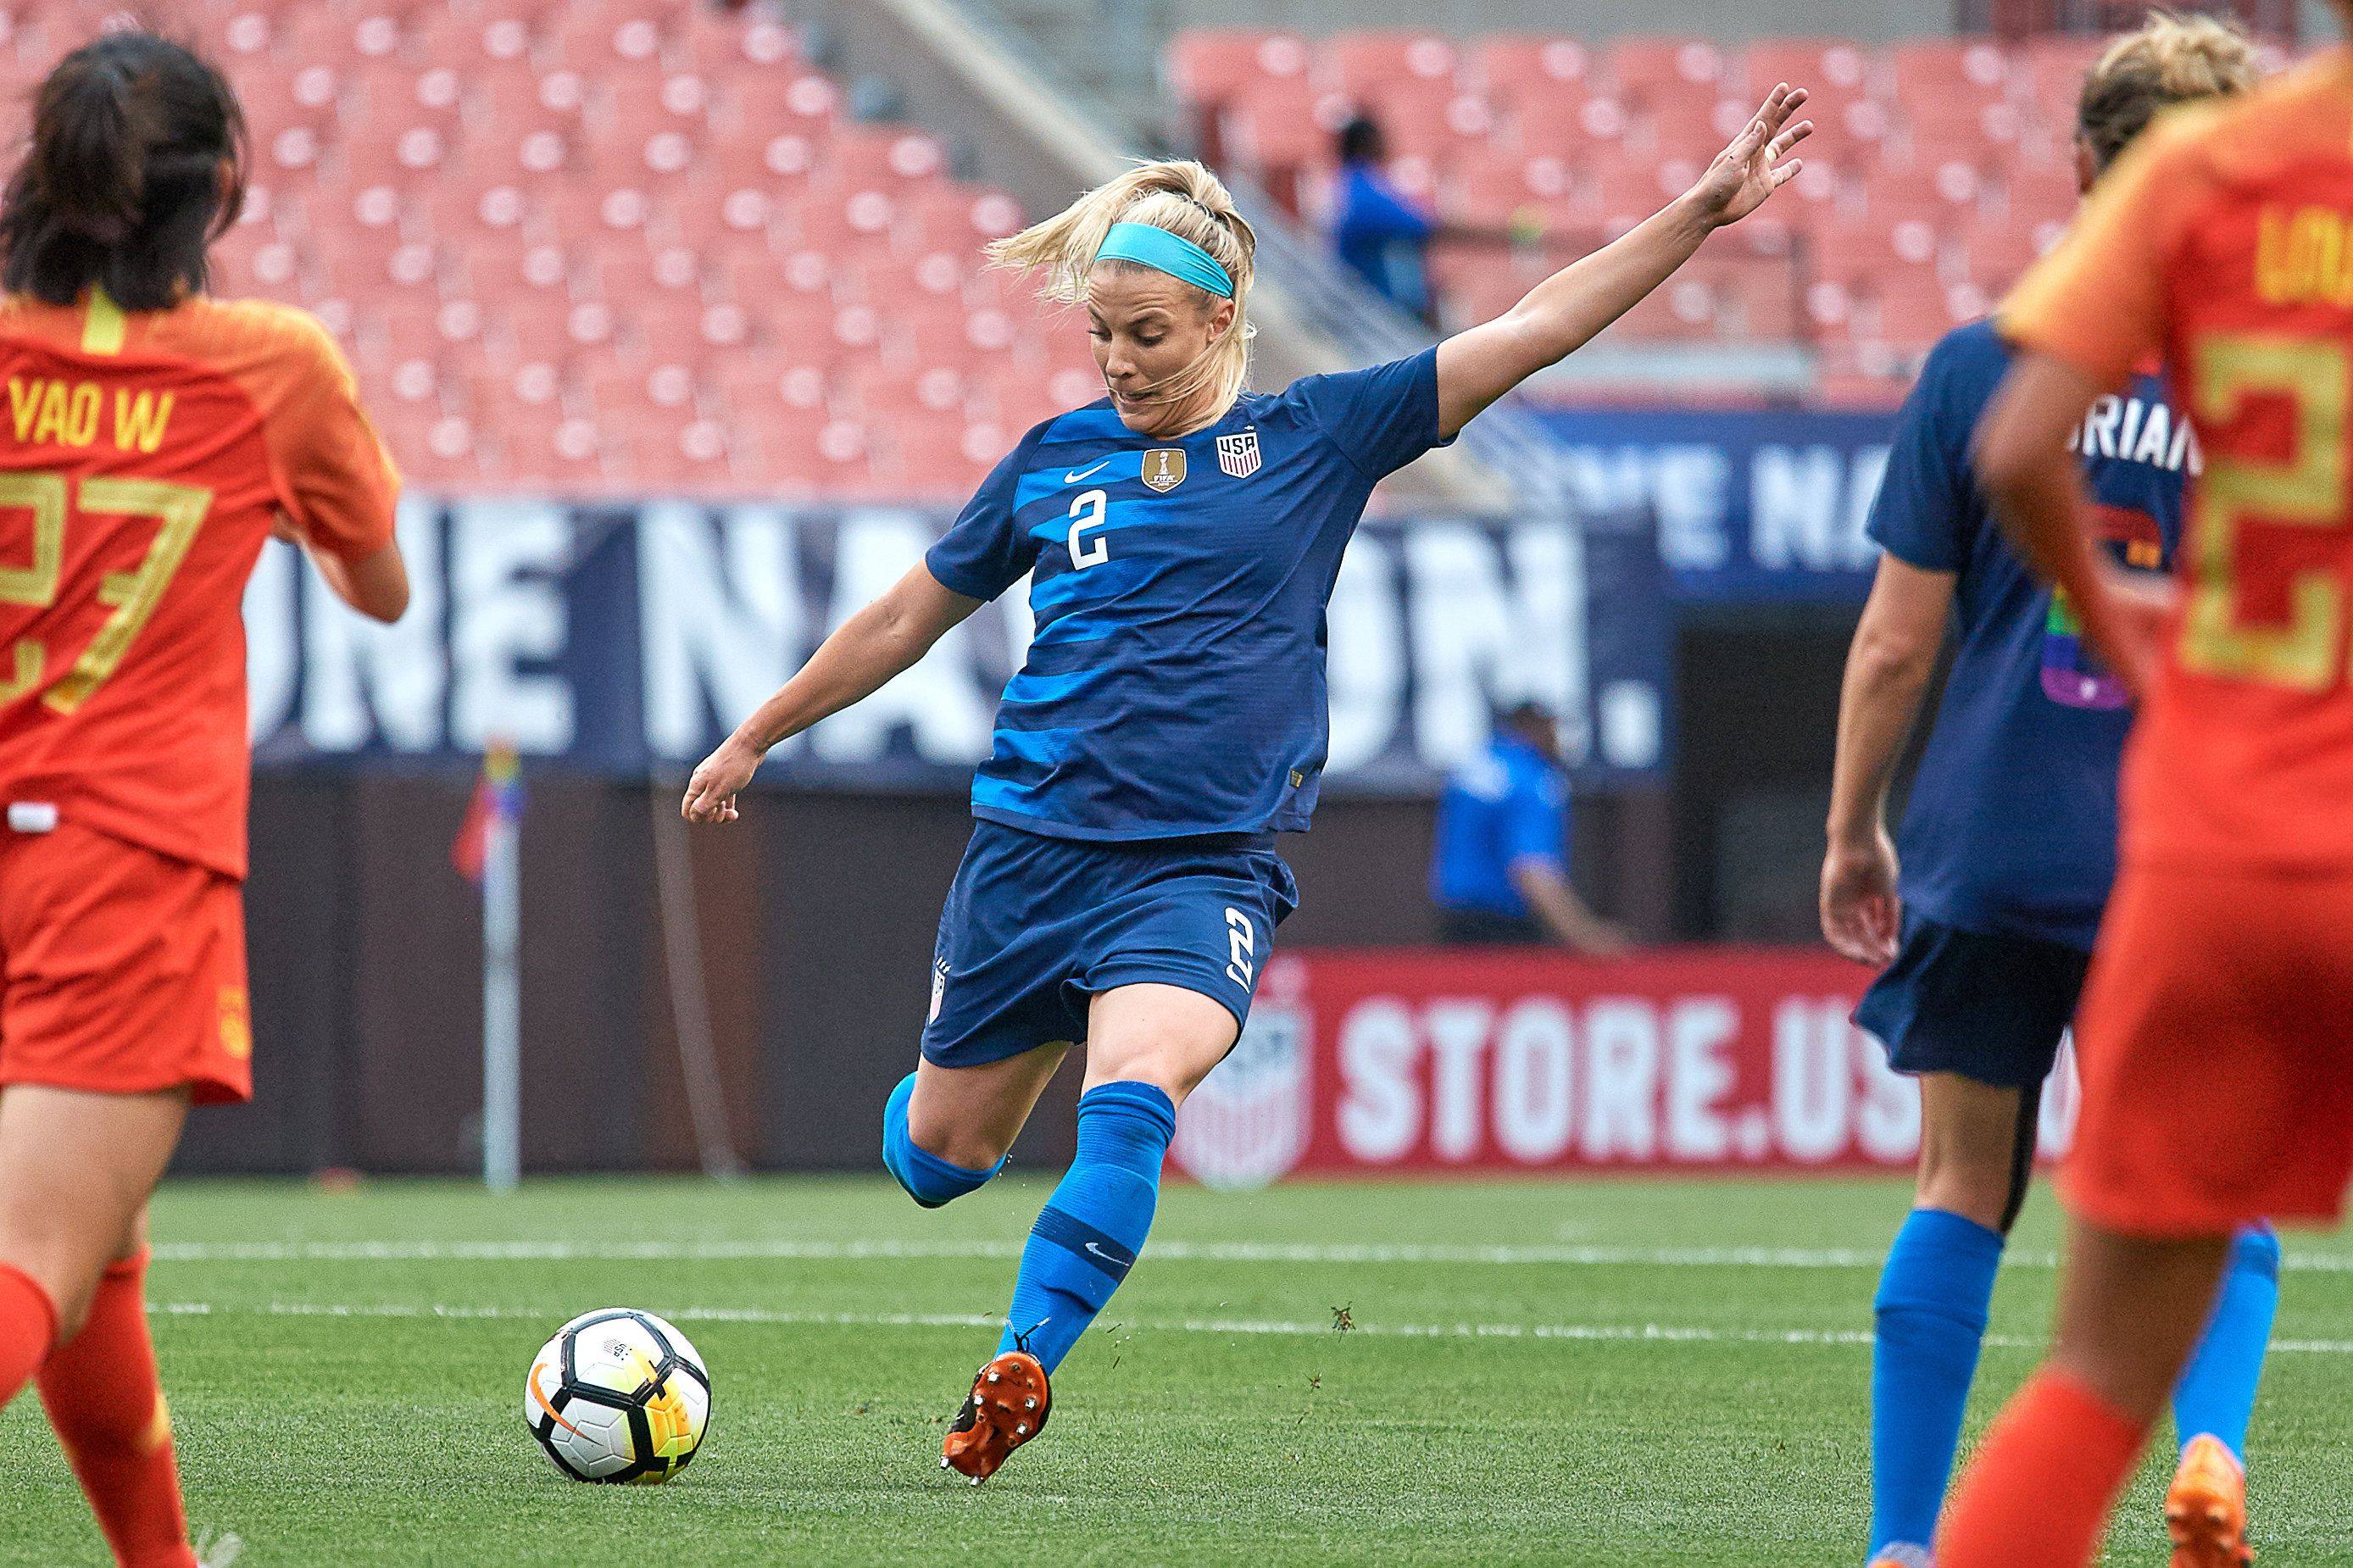 CLEVELAND, OH - JUNE 12: United States midfielder Julie Ertz (2) kicks the ball during an international friendly soccer match between the USA and China Women's National Teams on June 12, 2018, at FirstEnergy Stadium in Cleveland, Ohio. (Photo by Robin Alam/Icon Sportswire via Getty Images)